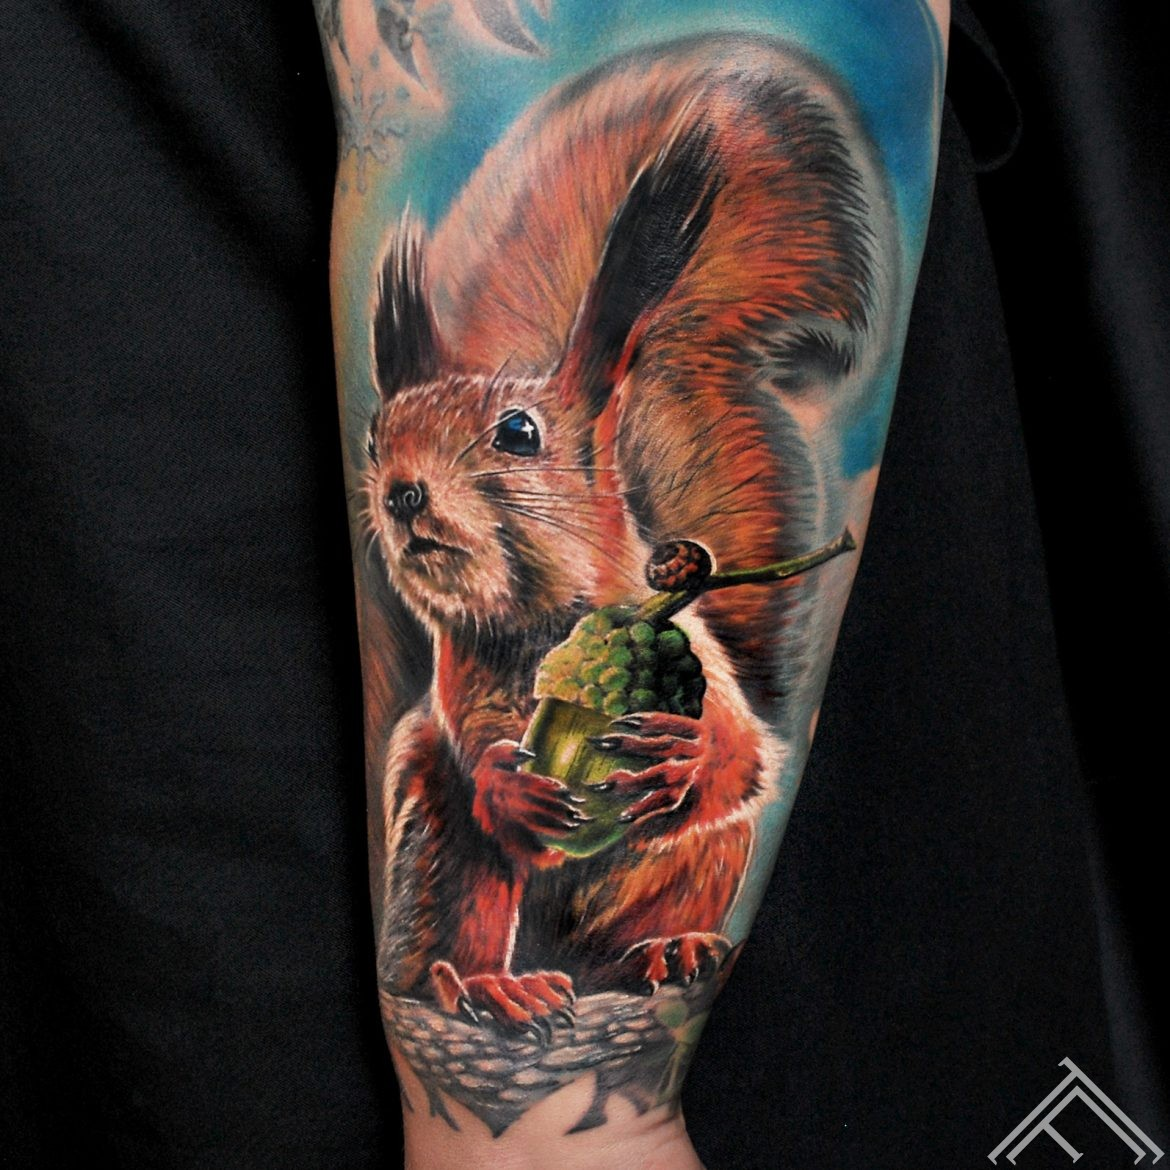 squirrel-animal-vavere-tattoo-tetovejums-tattoofrequency-riga